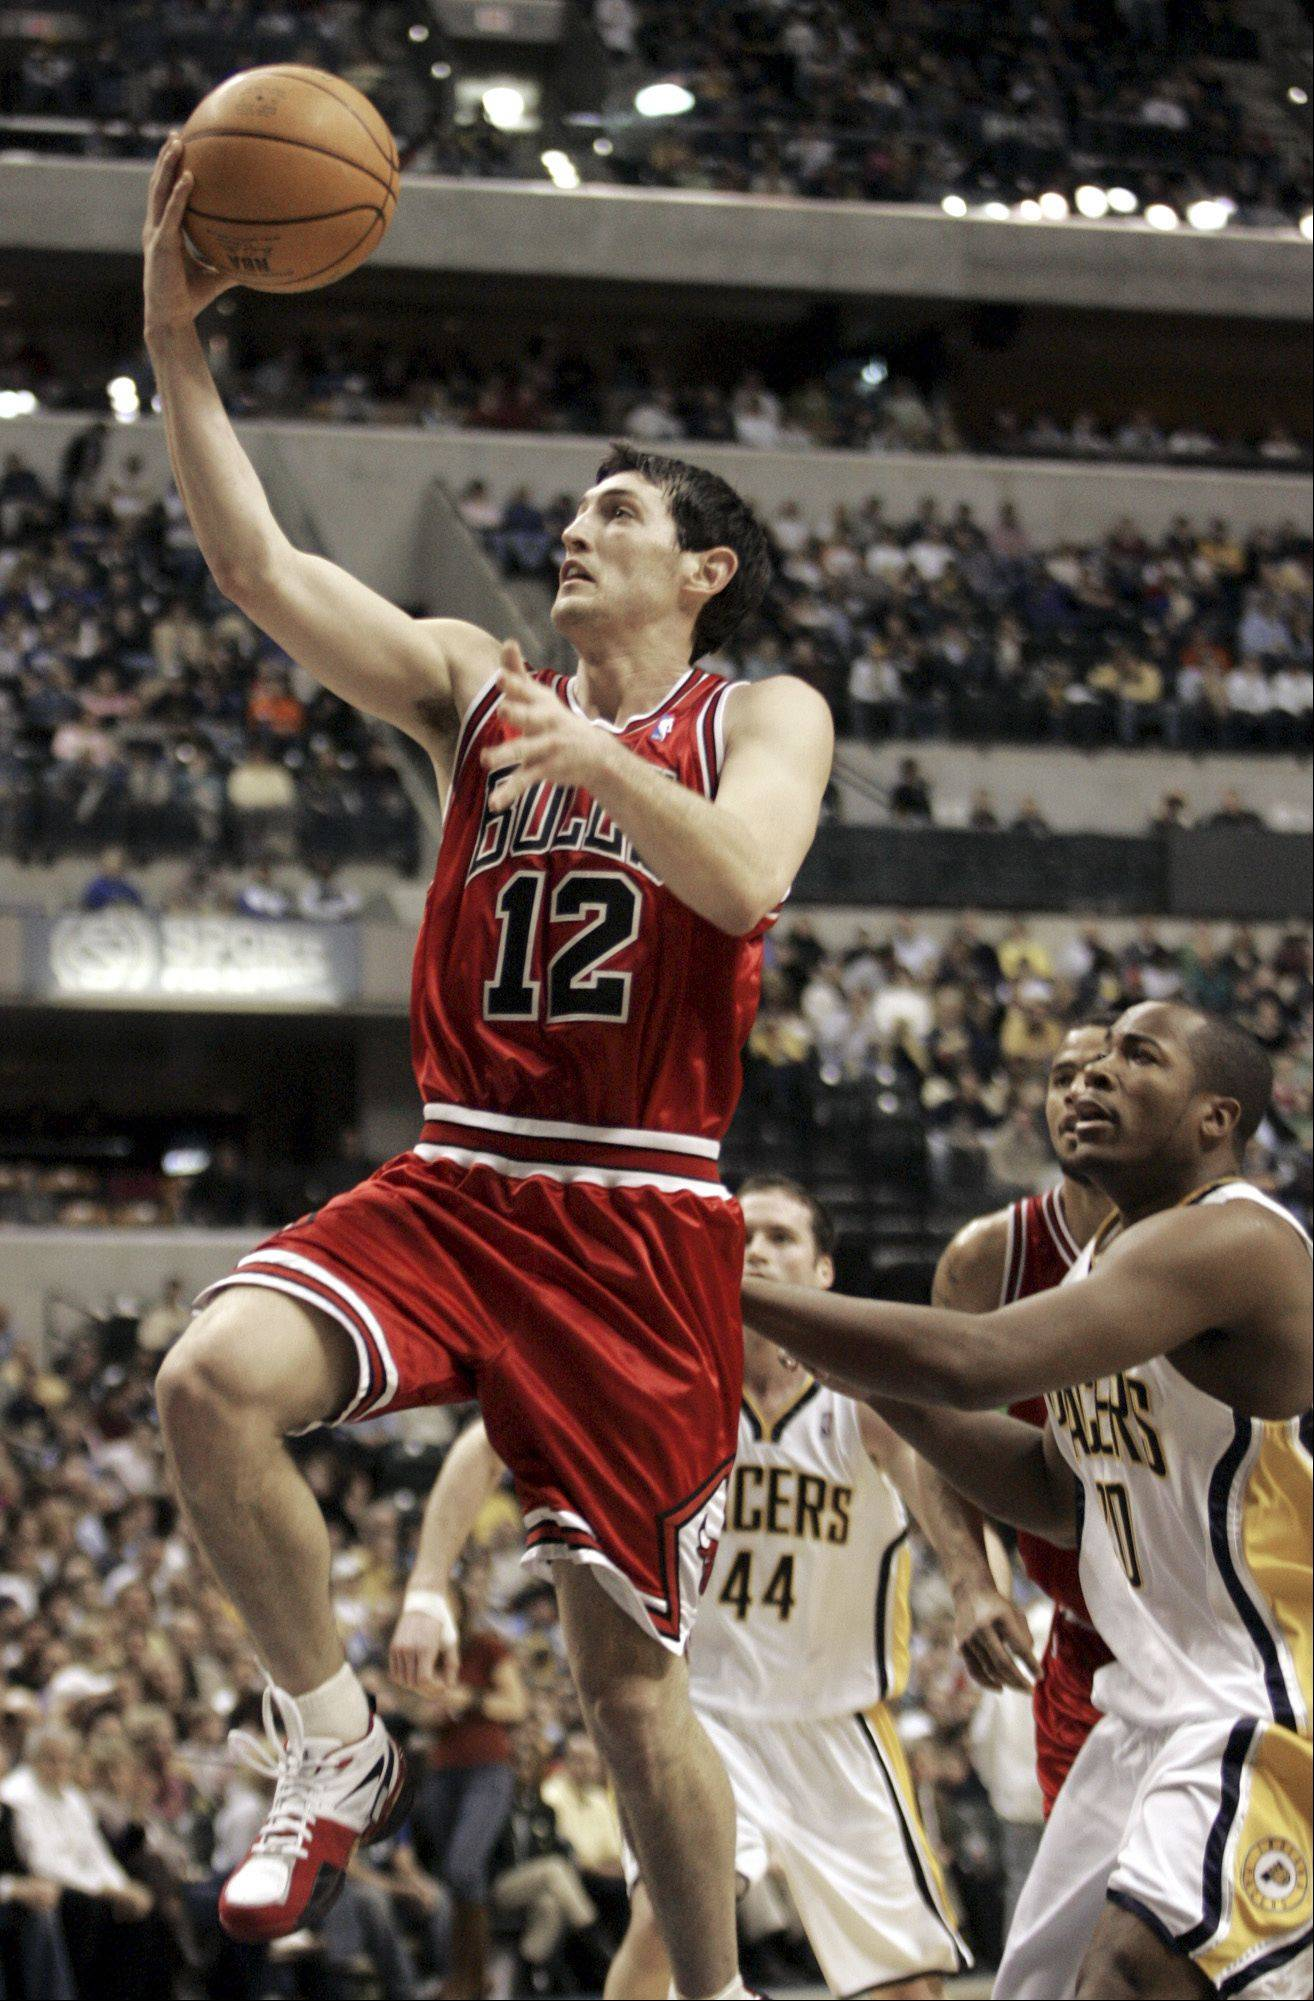 The Bulls' Kirk Hinrich scores past Indiana's Austin Croshere (44) and Fred Jones during the first half of a game in Indianapolis on Jan. 21, 2006.